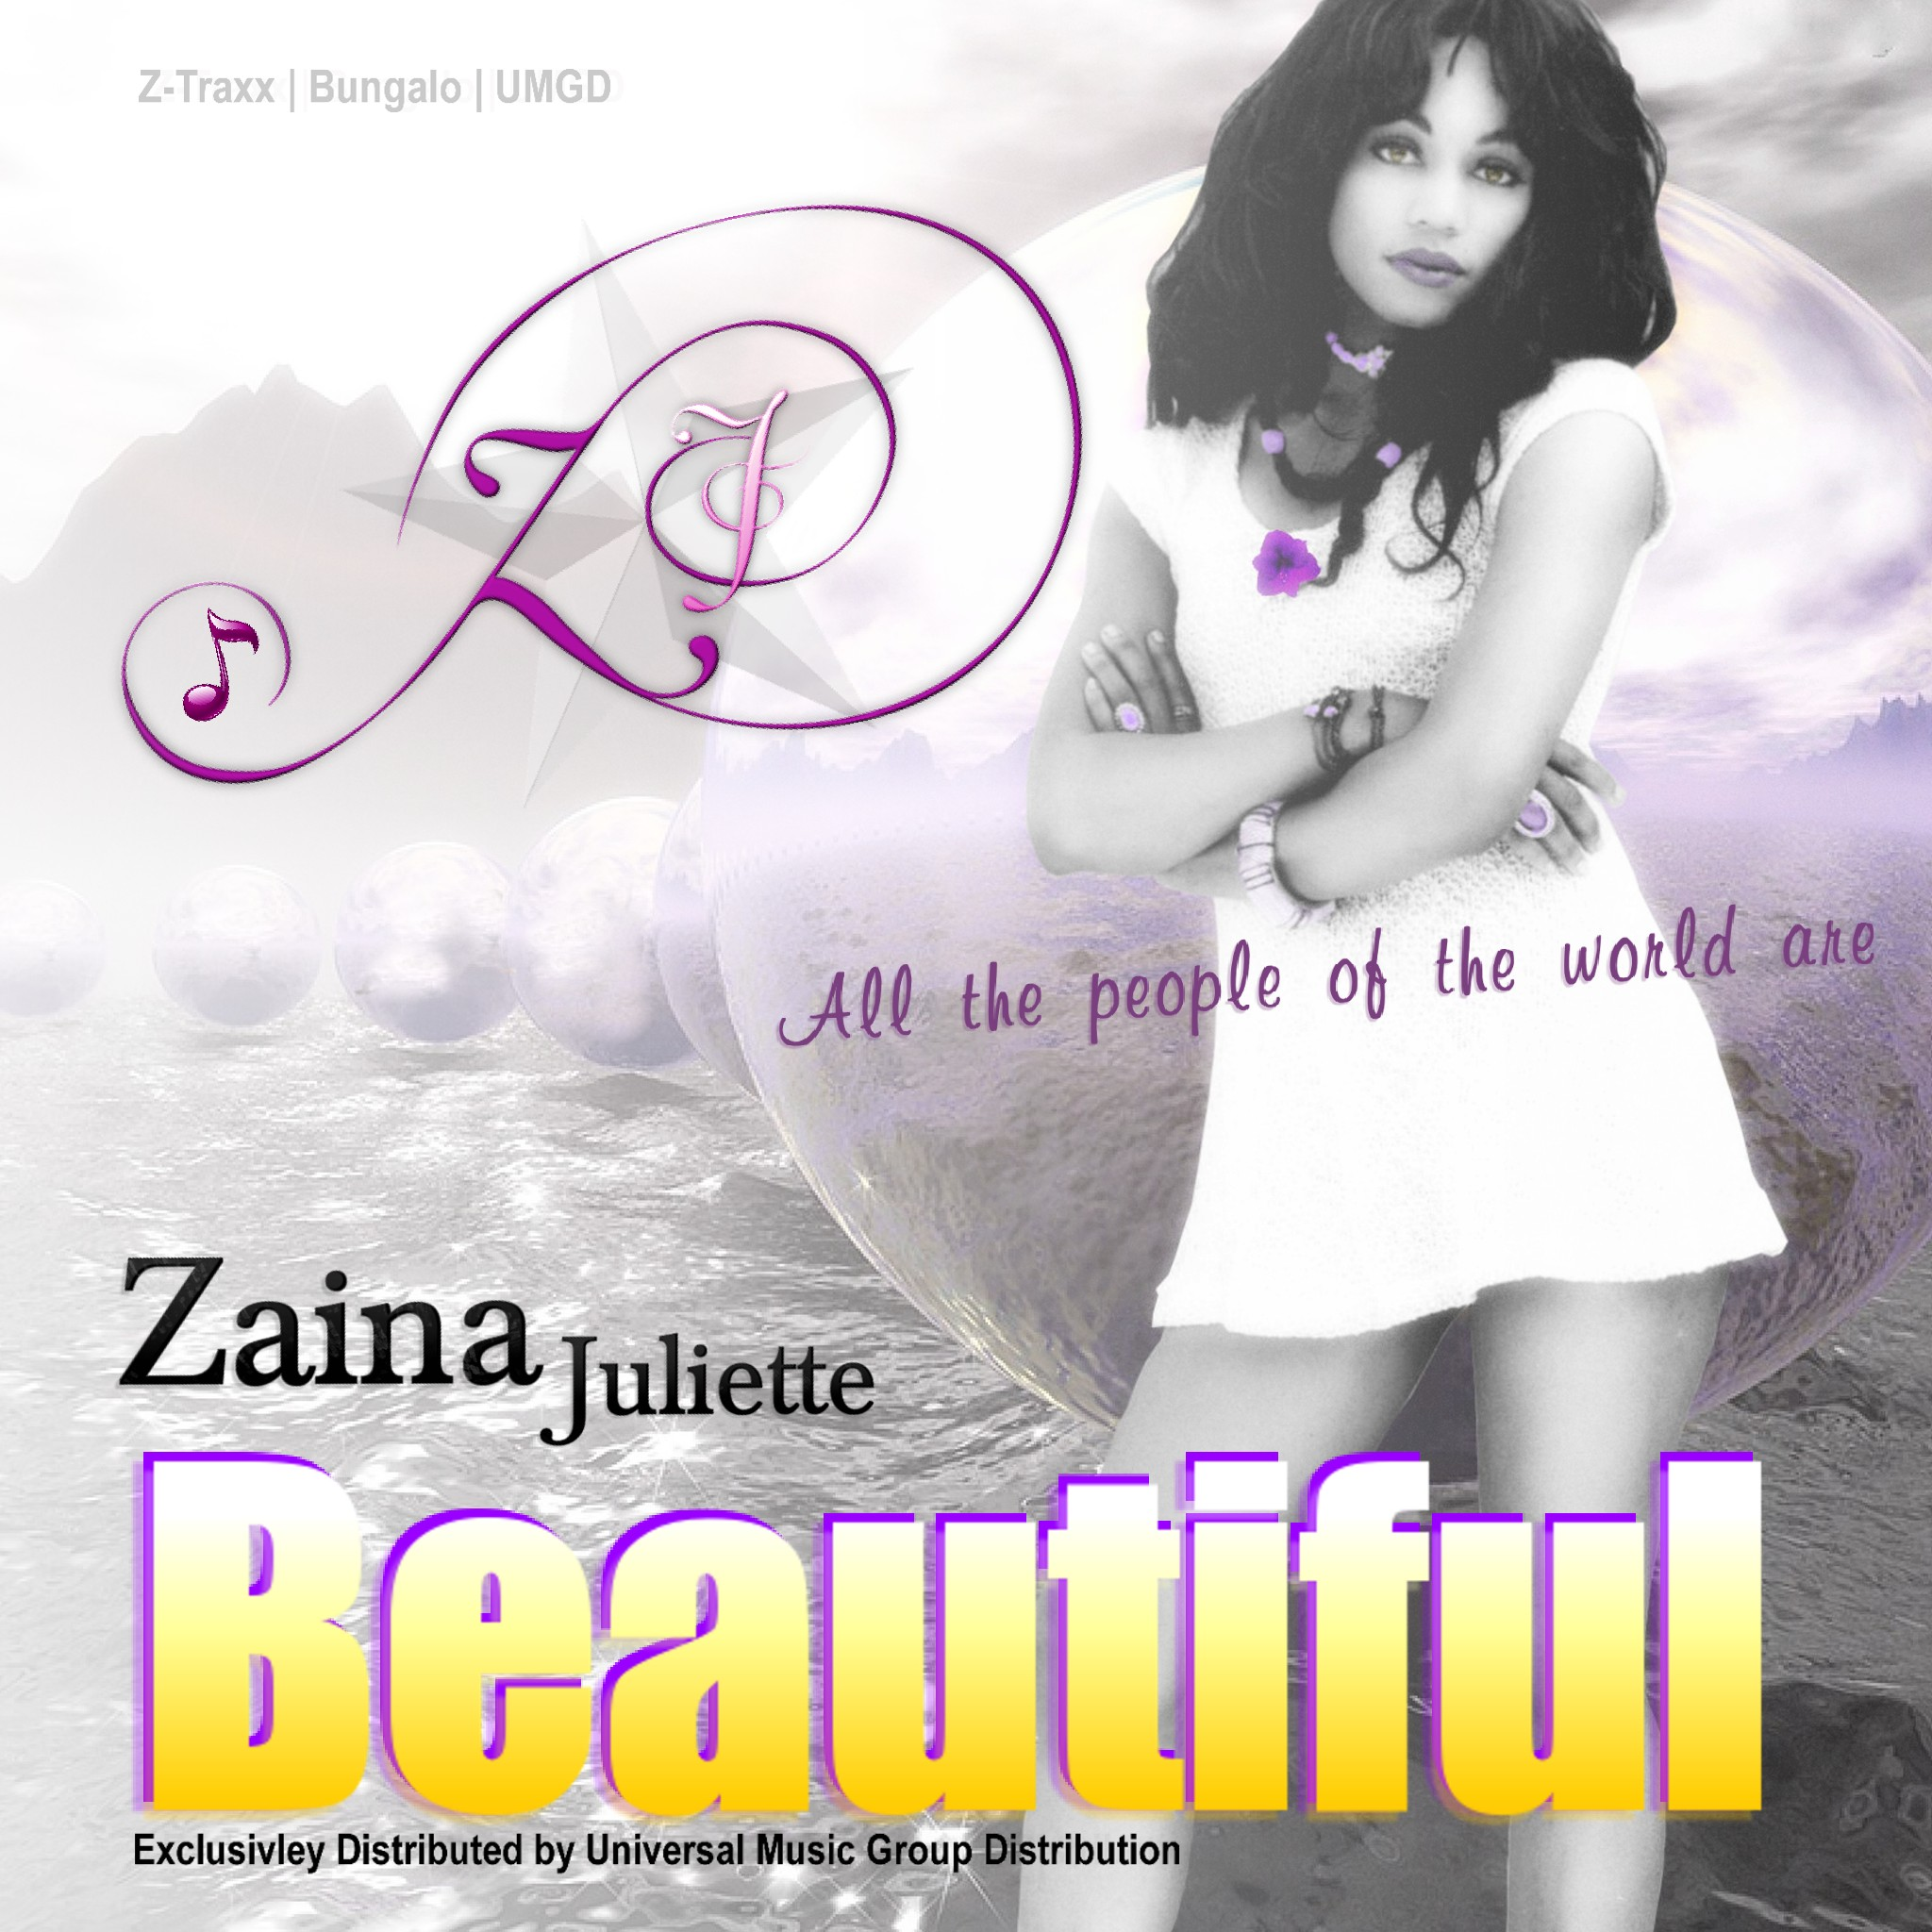 Zana+9+-Beautiful+CD+cover+444.jpg